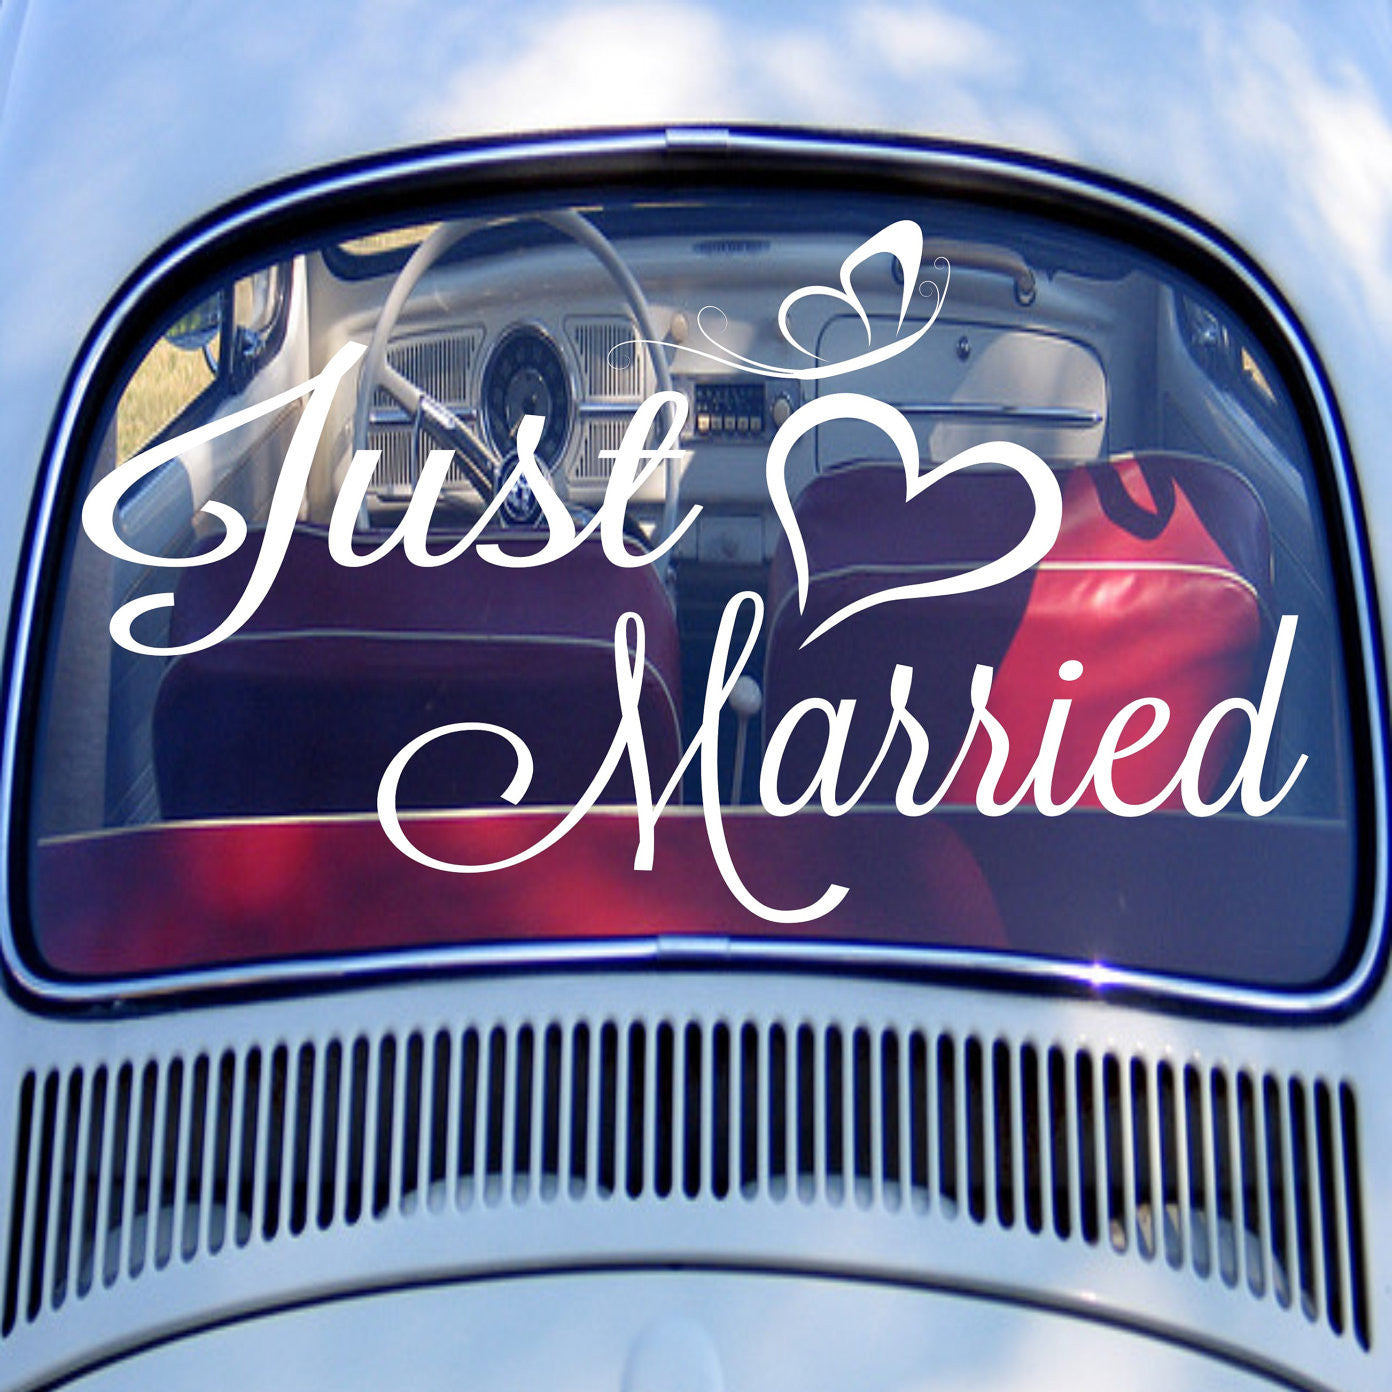 Just married car decal wedding personalized names and dates monogrammed